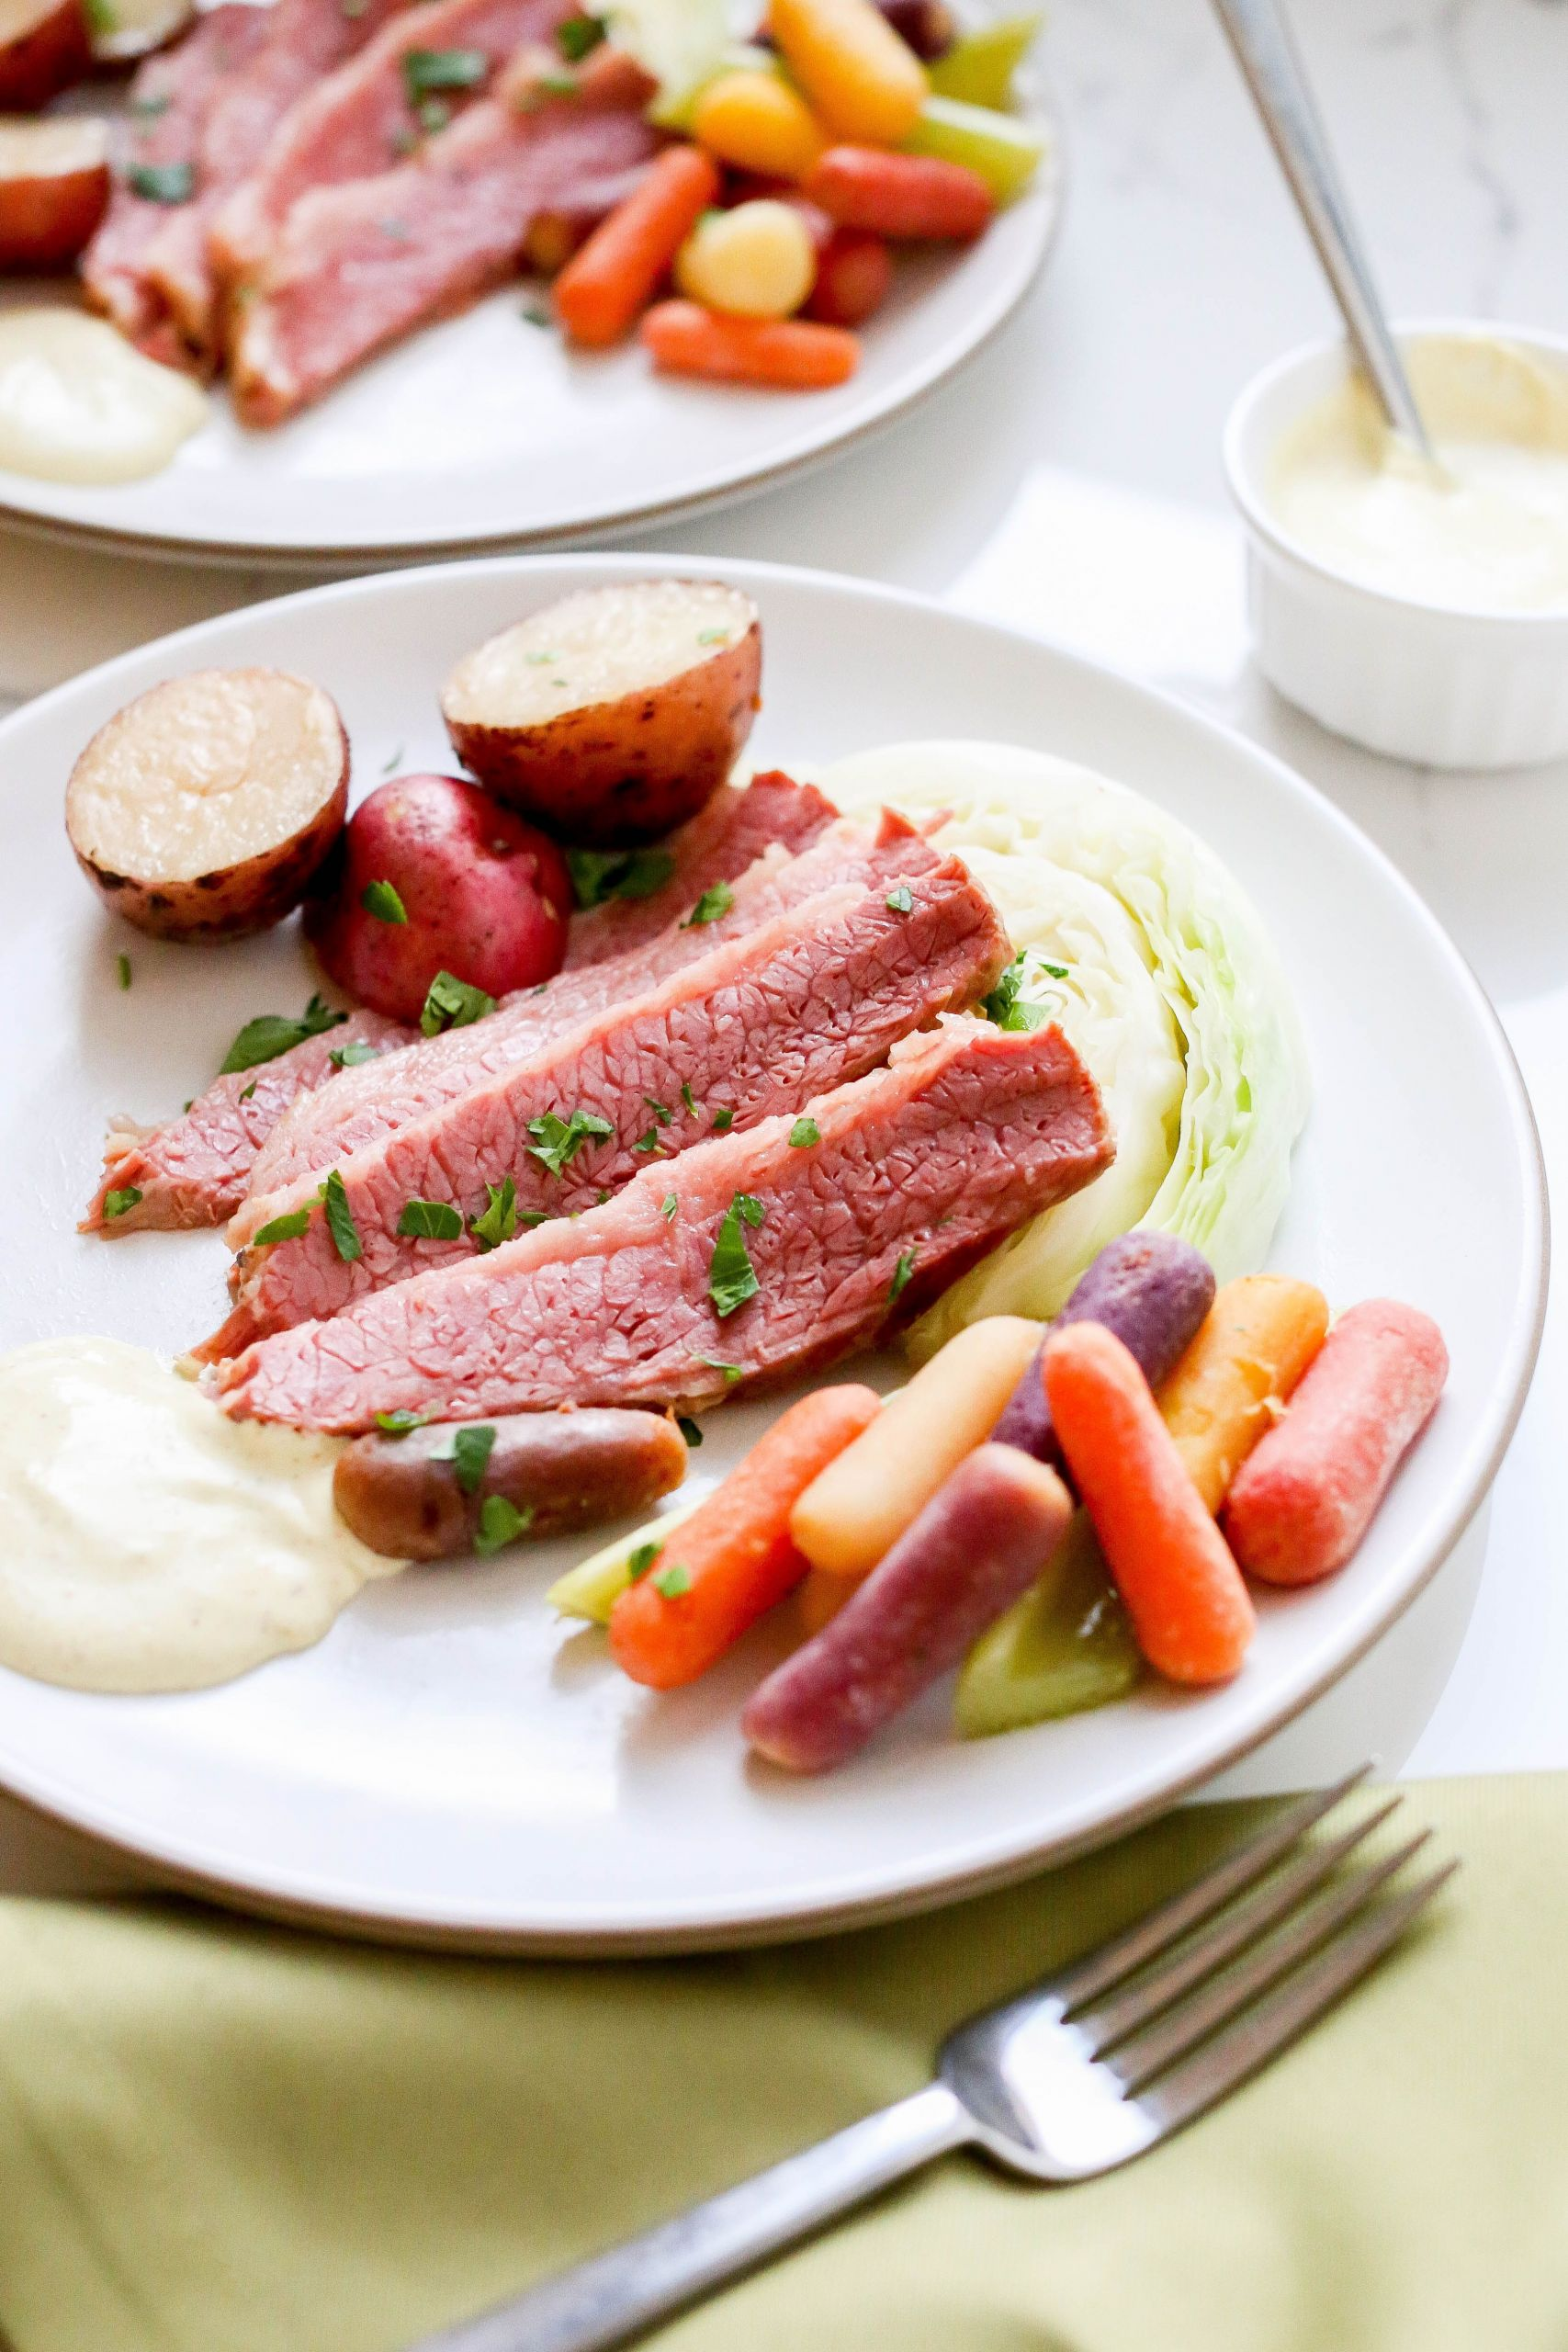 Corned Beef Recipes Slow Cooker Keto  A Homemade Corned Beef and Cabbage recipe made simple our